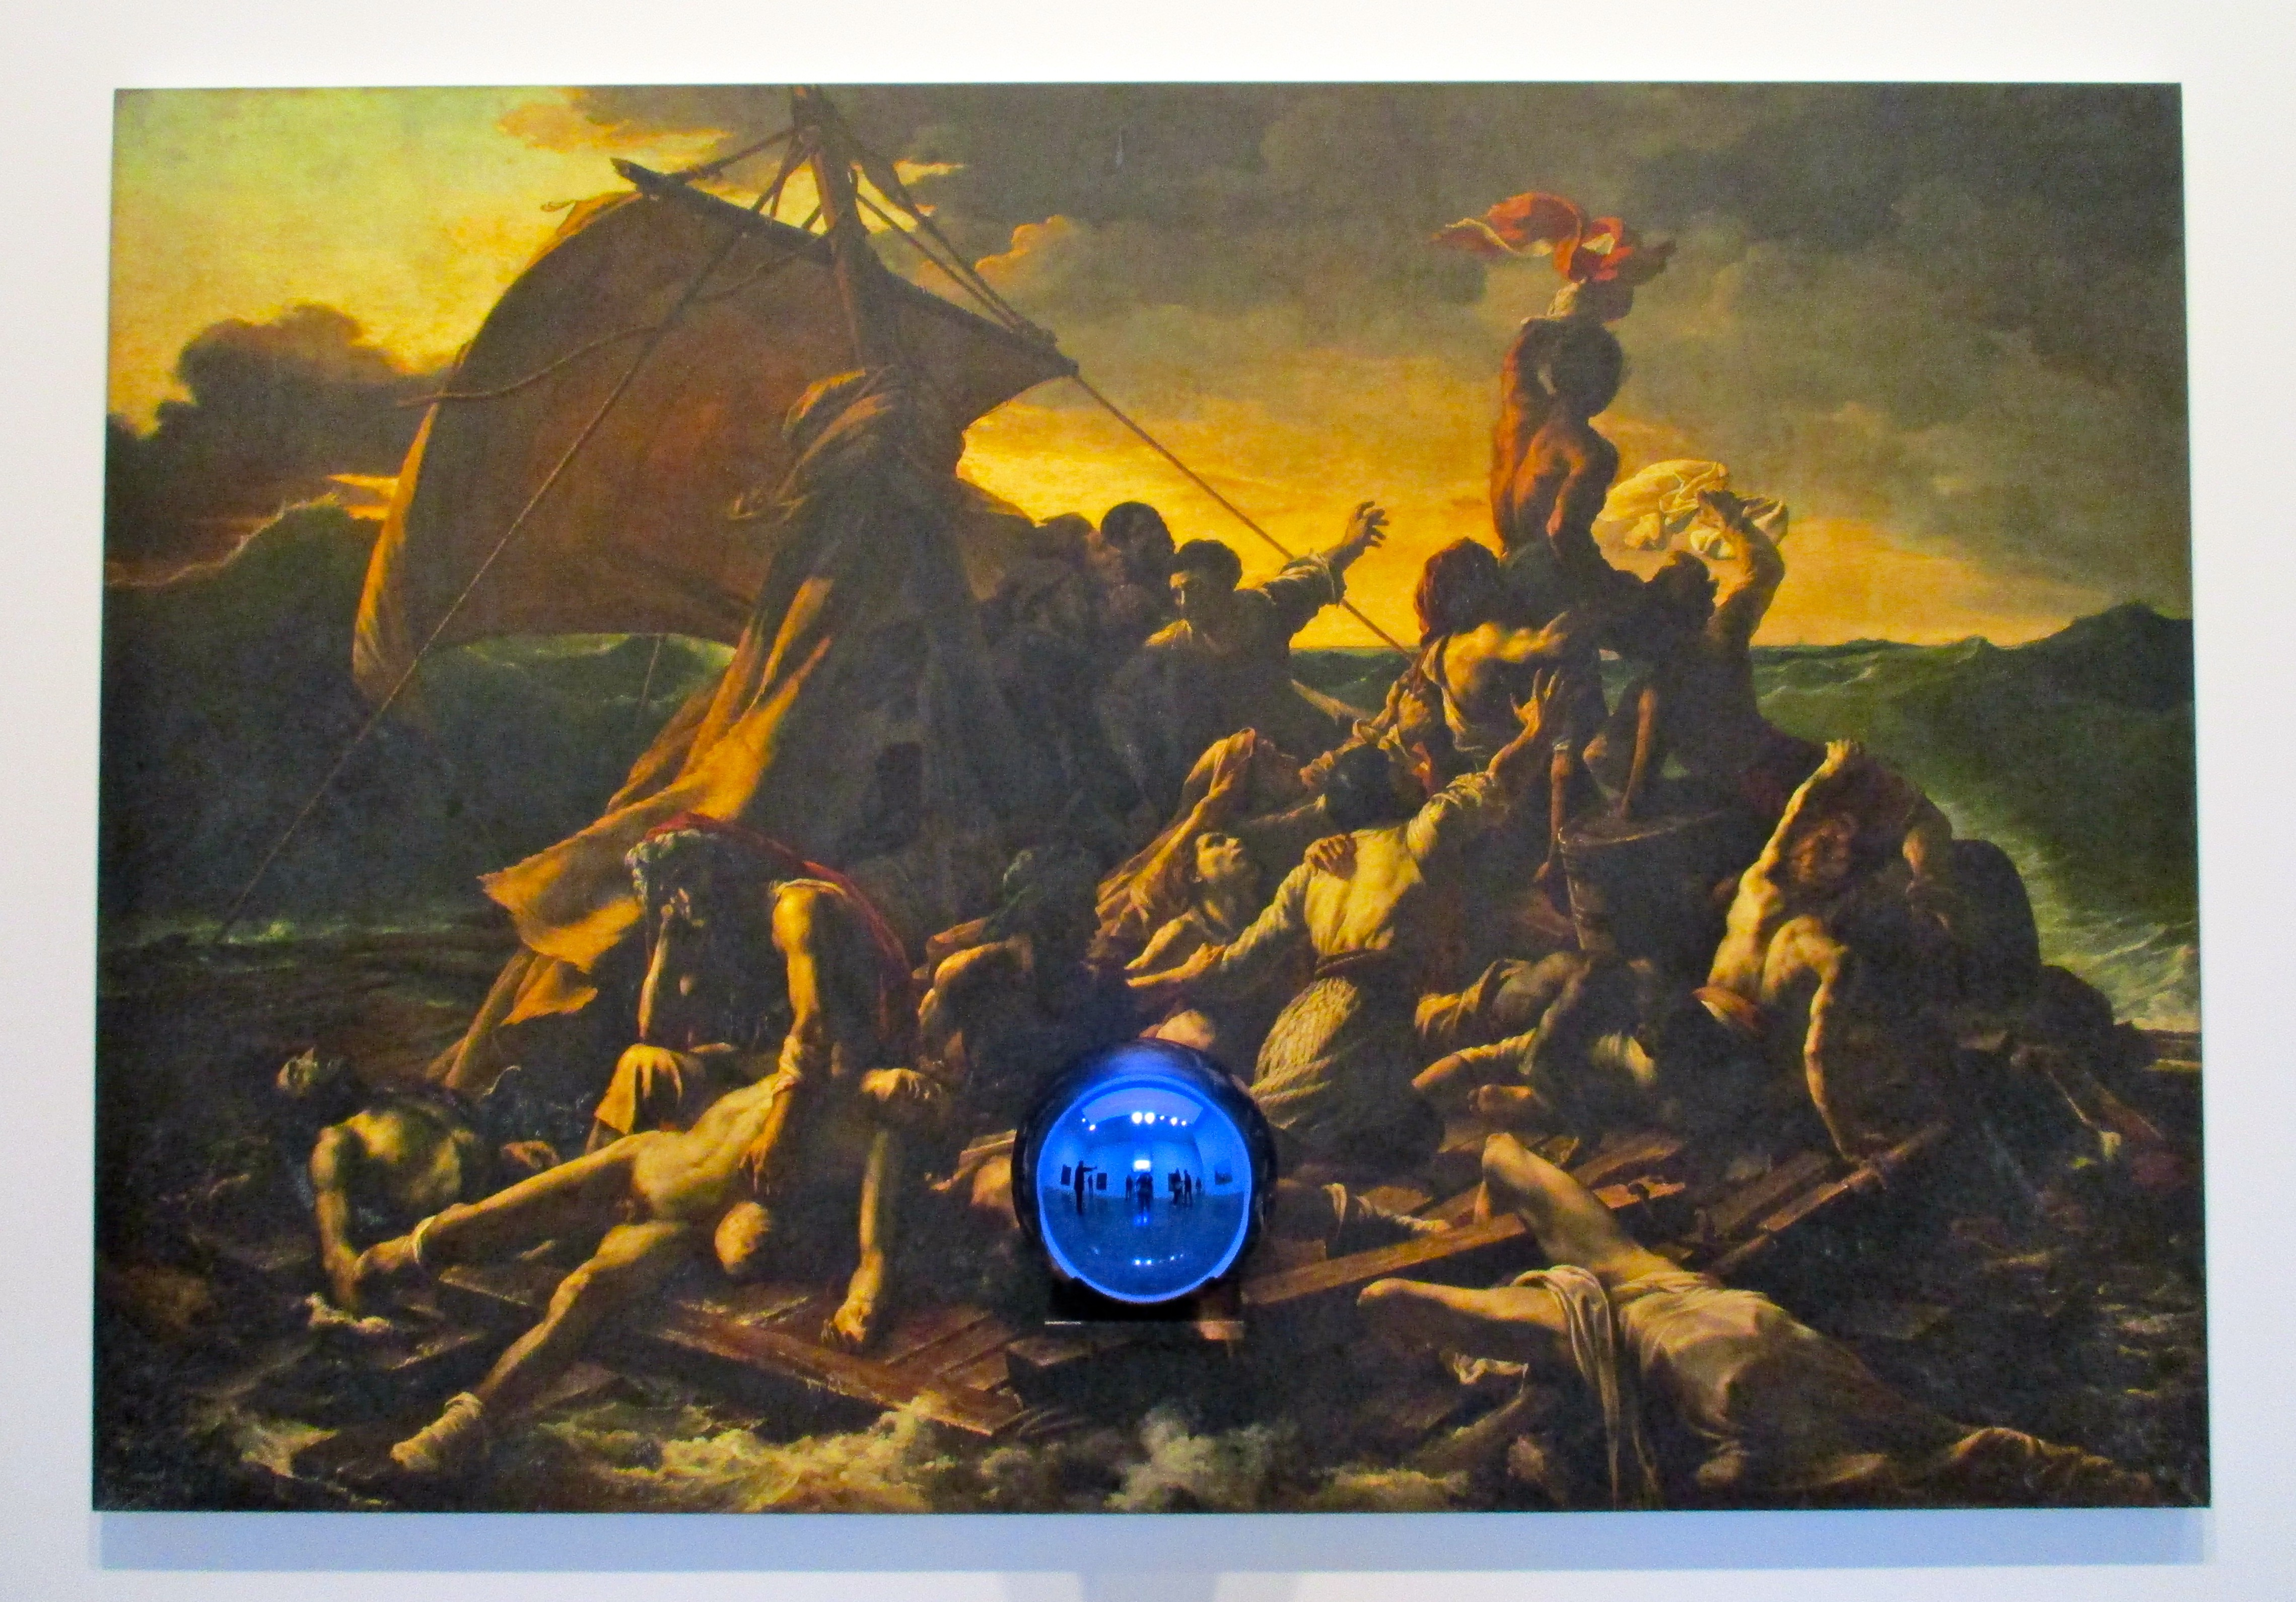 Jeff Koons Gazing Ball Paintings at Gagosian Gallery | The ...